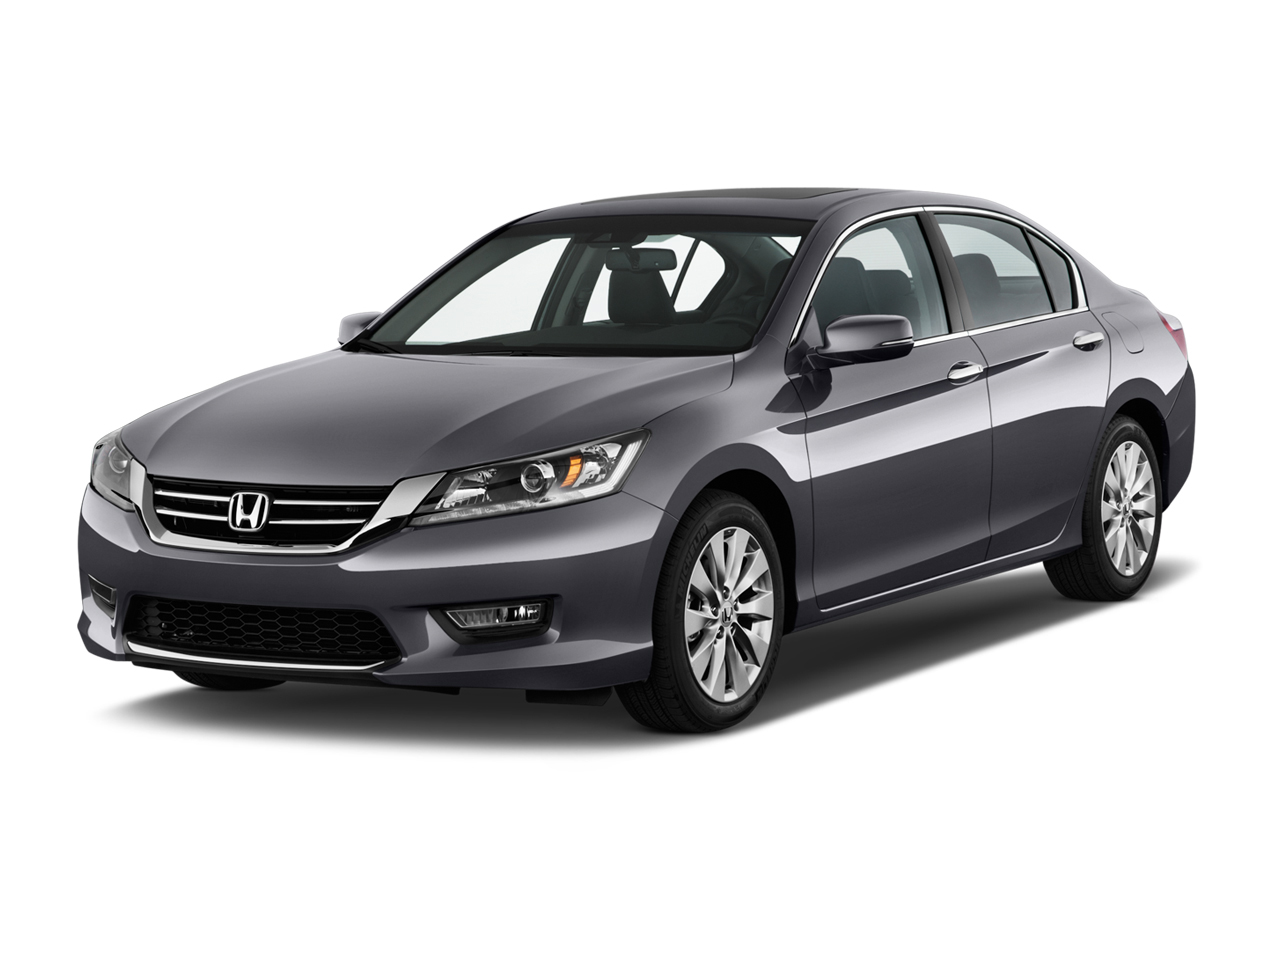 2013 Honda Accord Sedan Review Ratings Specs Prices